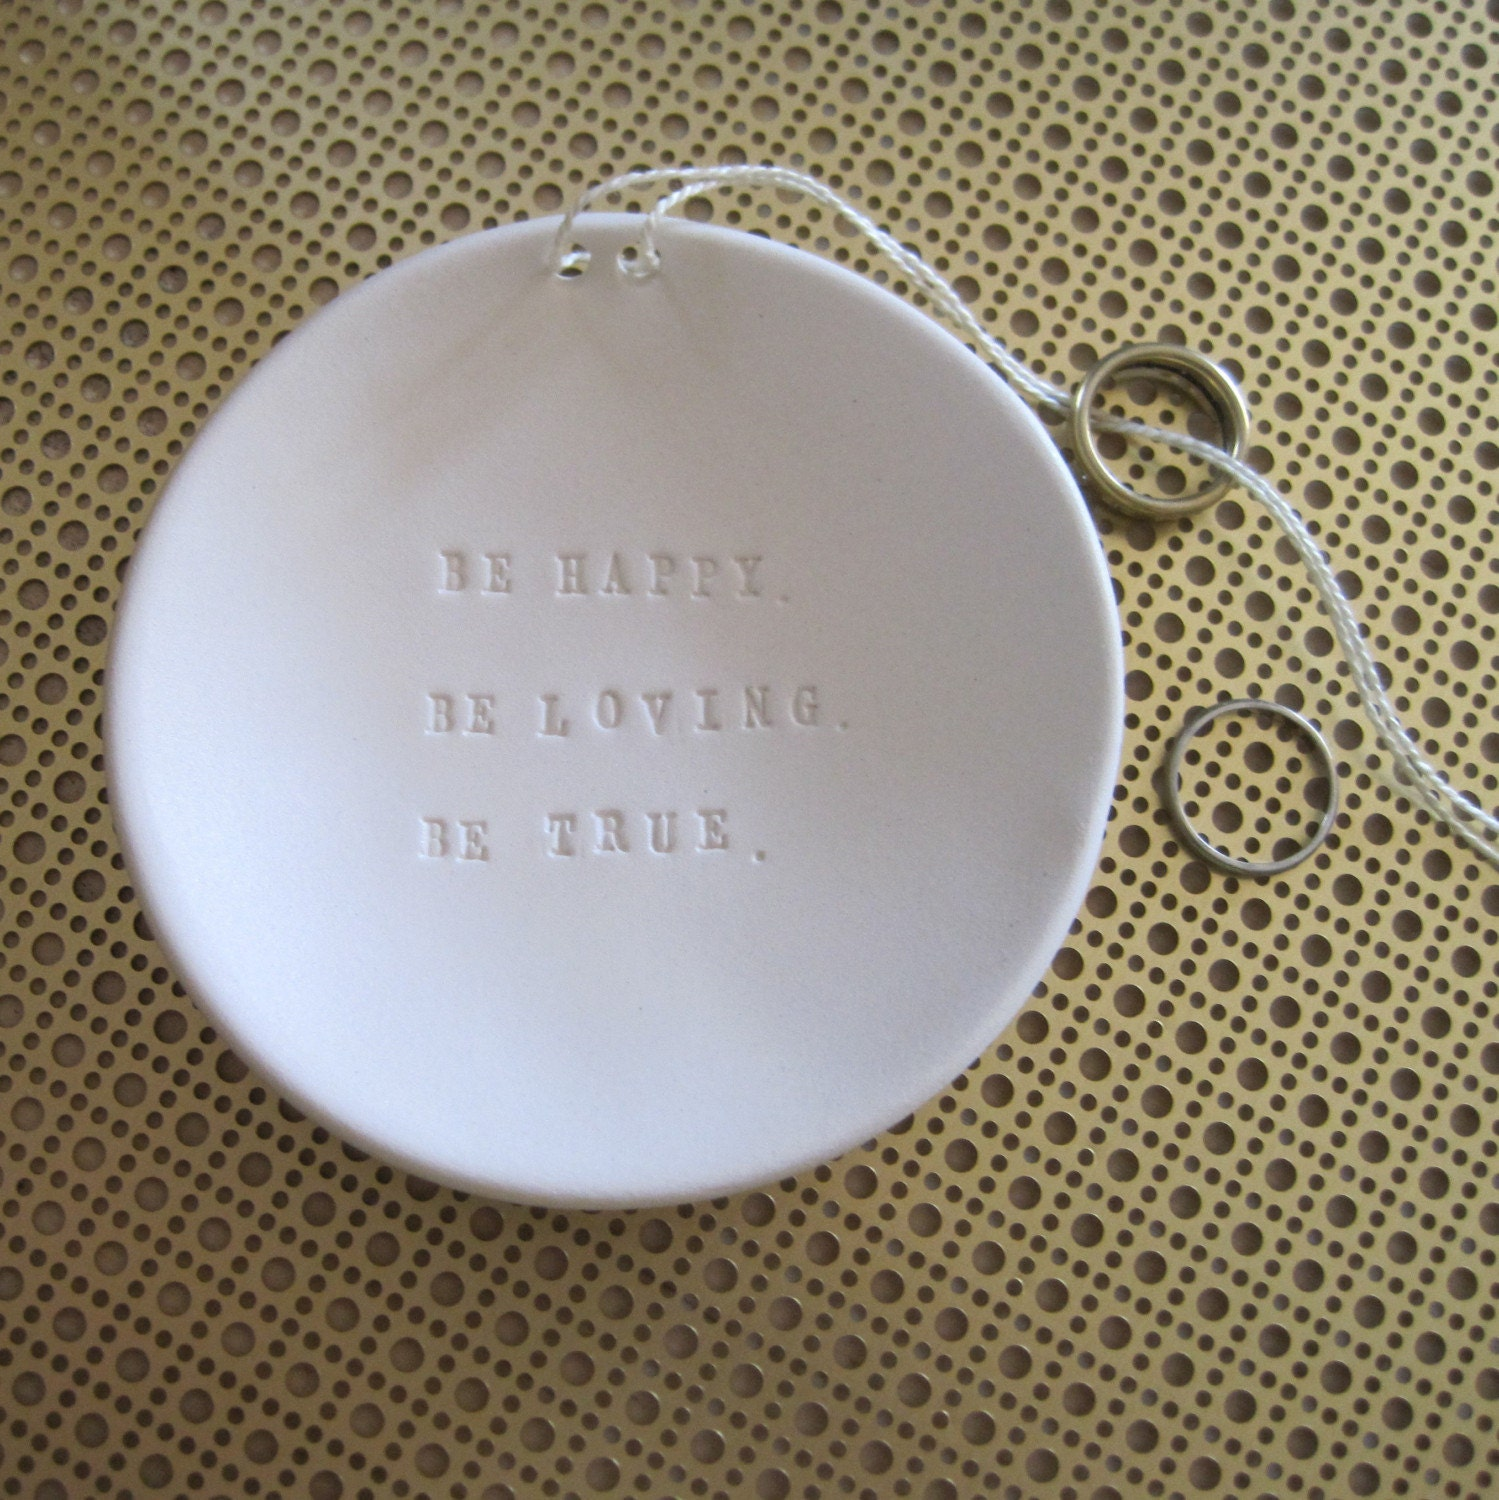 Be Happy. Be Loving. Be True.  Ring Bearer Bowl (TM) wedding or commitment ceremony dish - the original design by Paloma's Nest